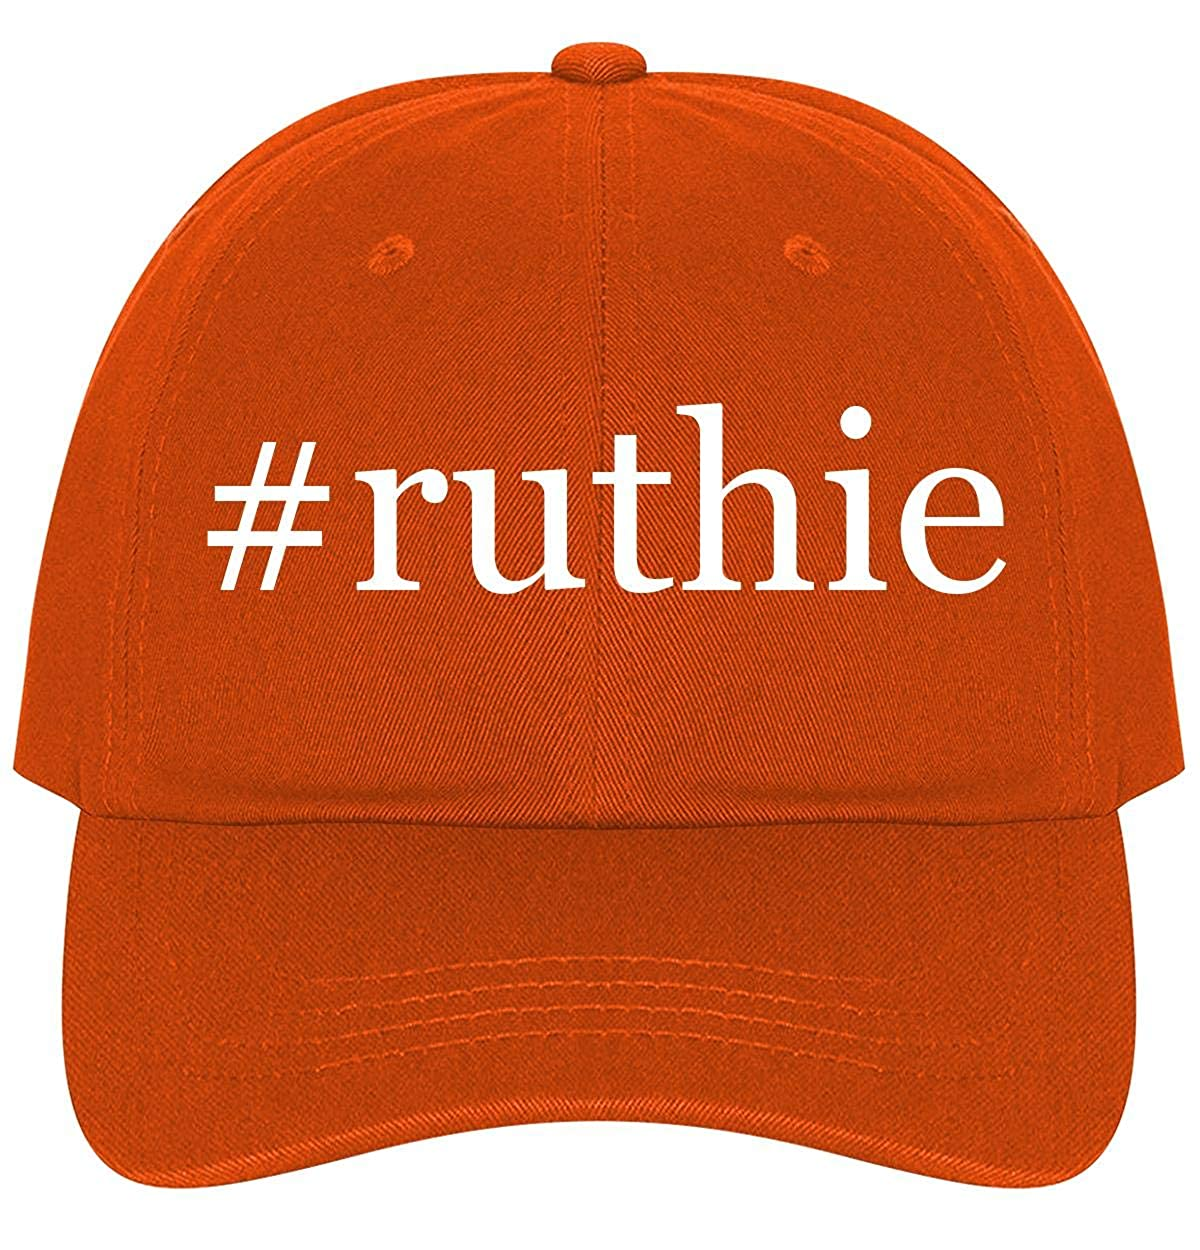 A Nice Comfortable Adjustable Hashtag Dad Hat Cap The Town Butler #Ruthie